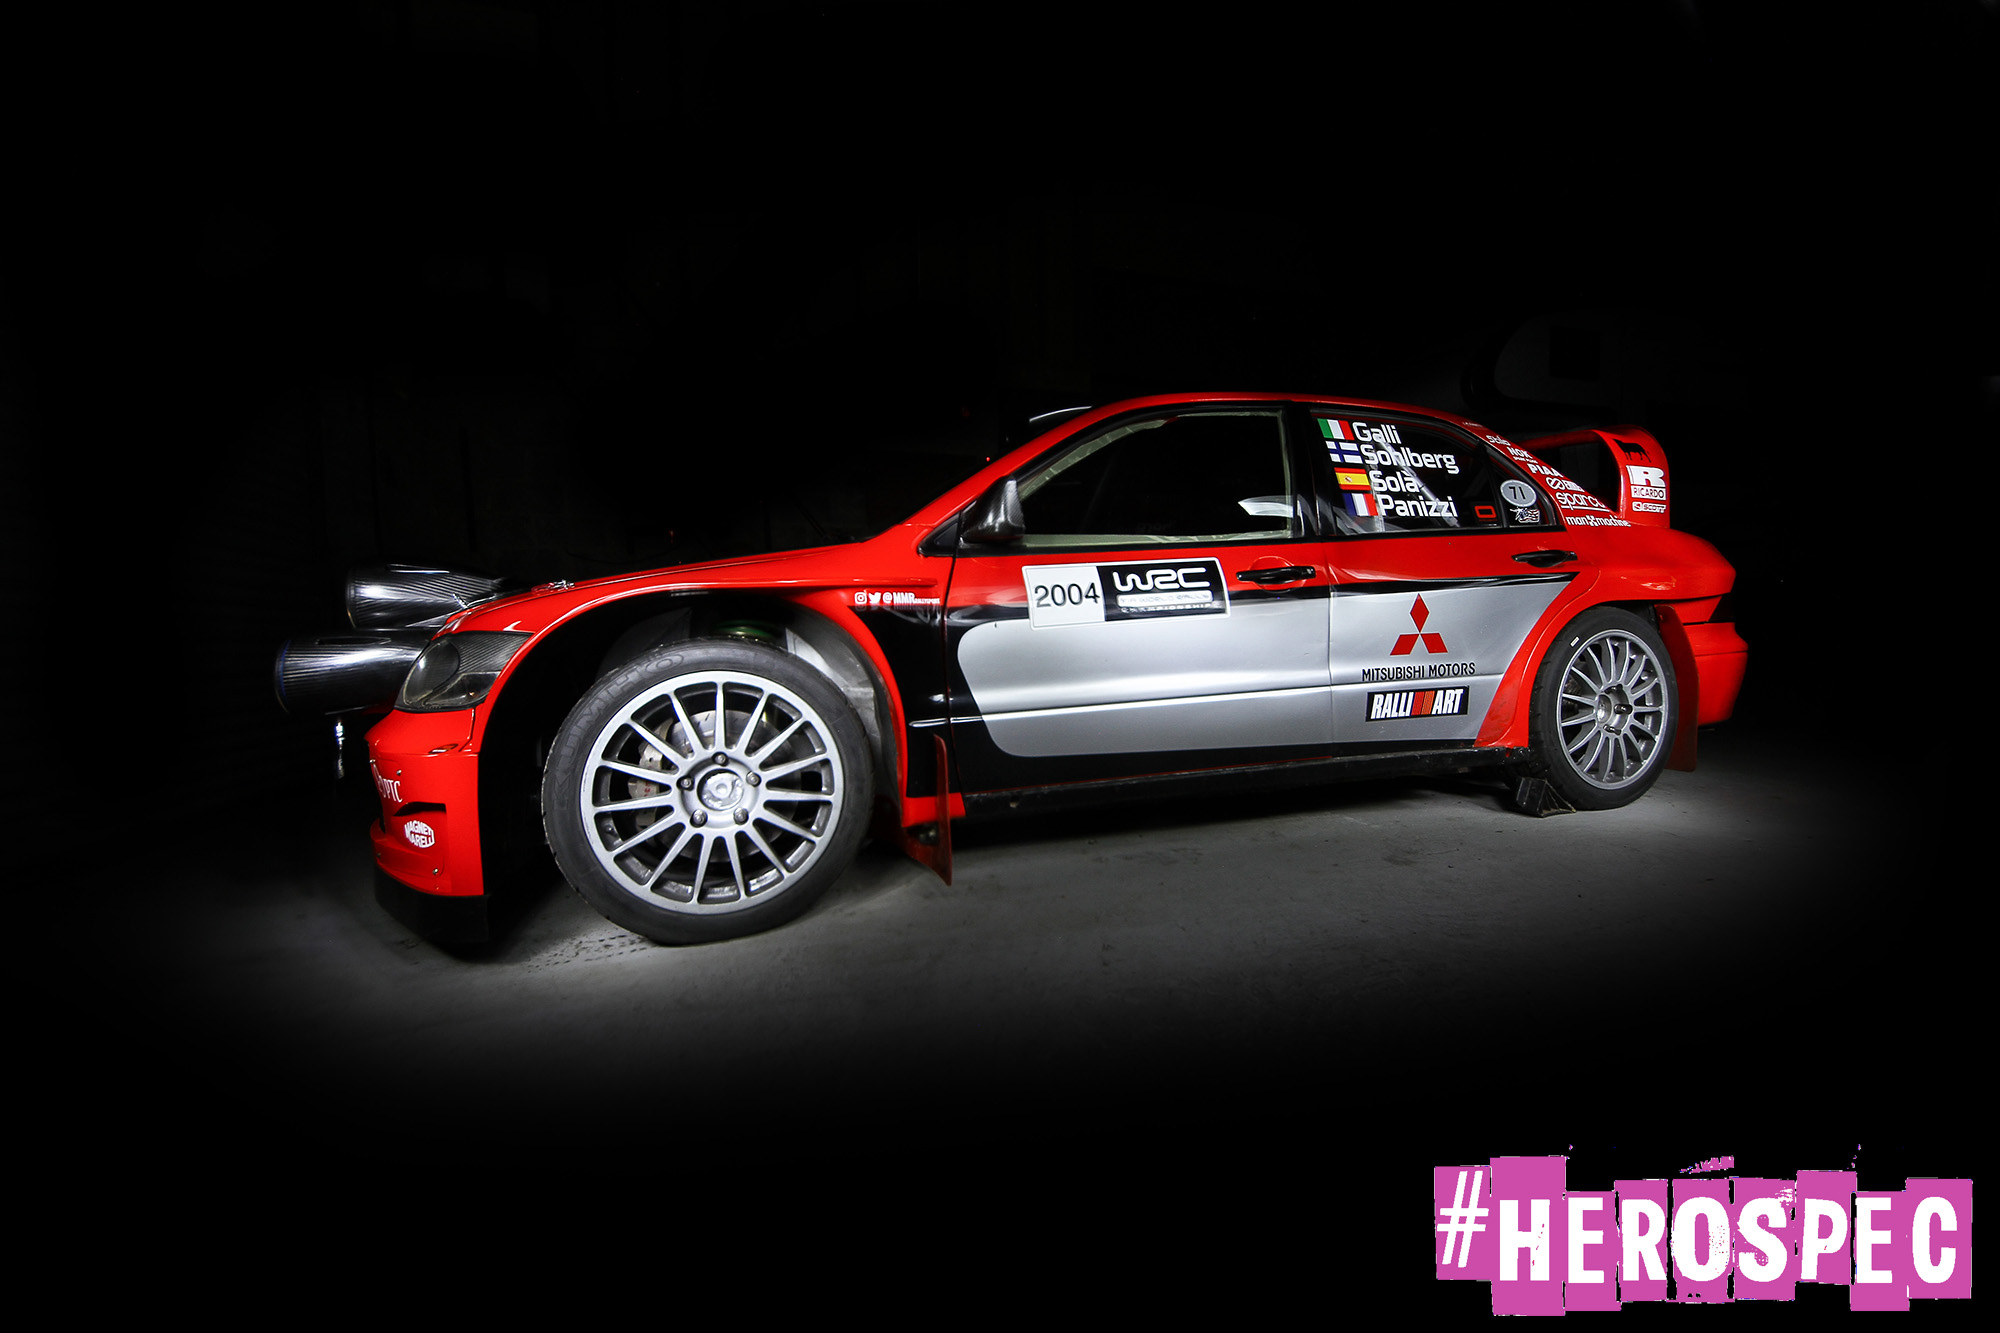 The Mitsubishi Lancer WRC Returns to Ireland! – #HEROSPEC